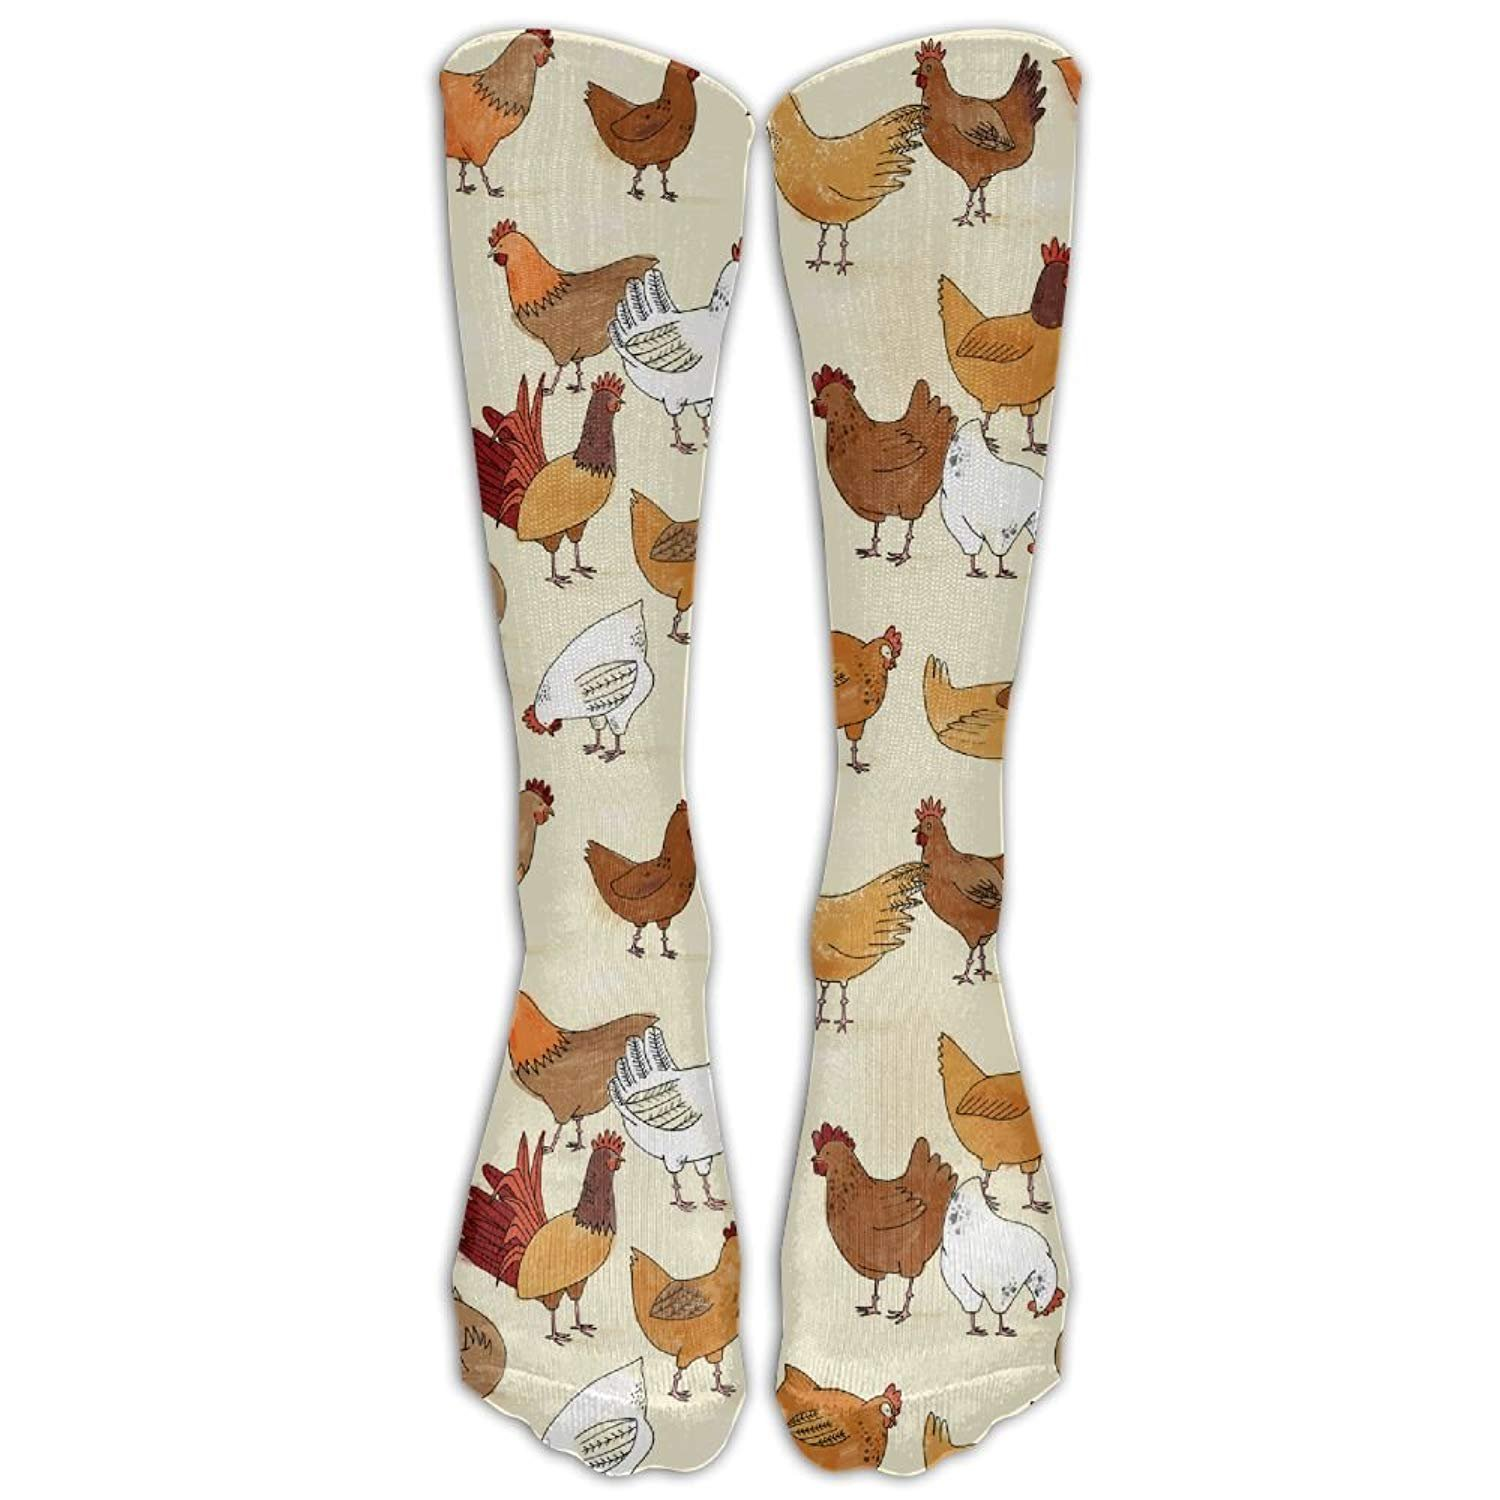 A Brood Of Chickens Unisex Novelty Mid-Calf Socks Athletic Tube Stockings Size 6-10